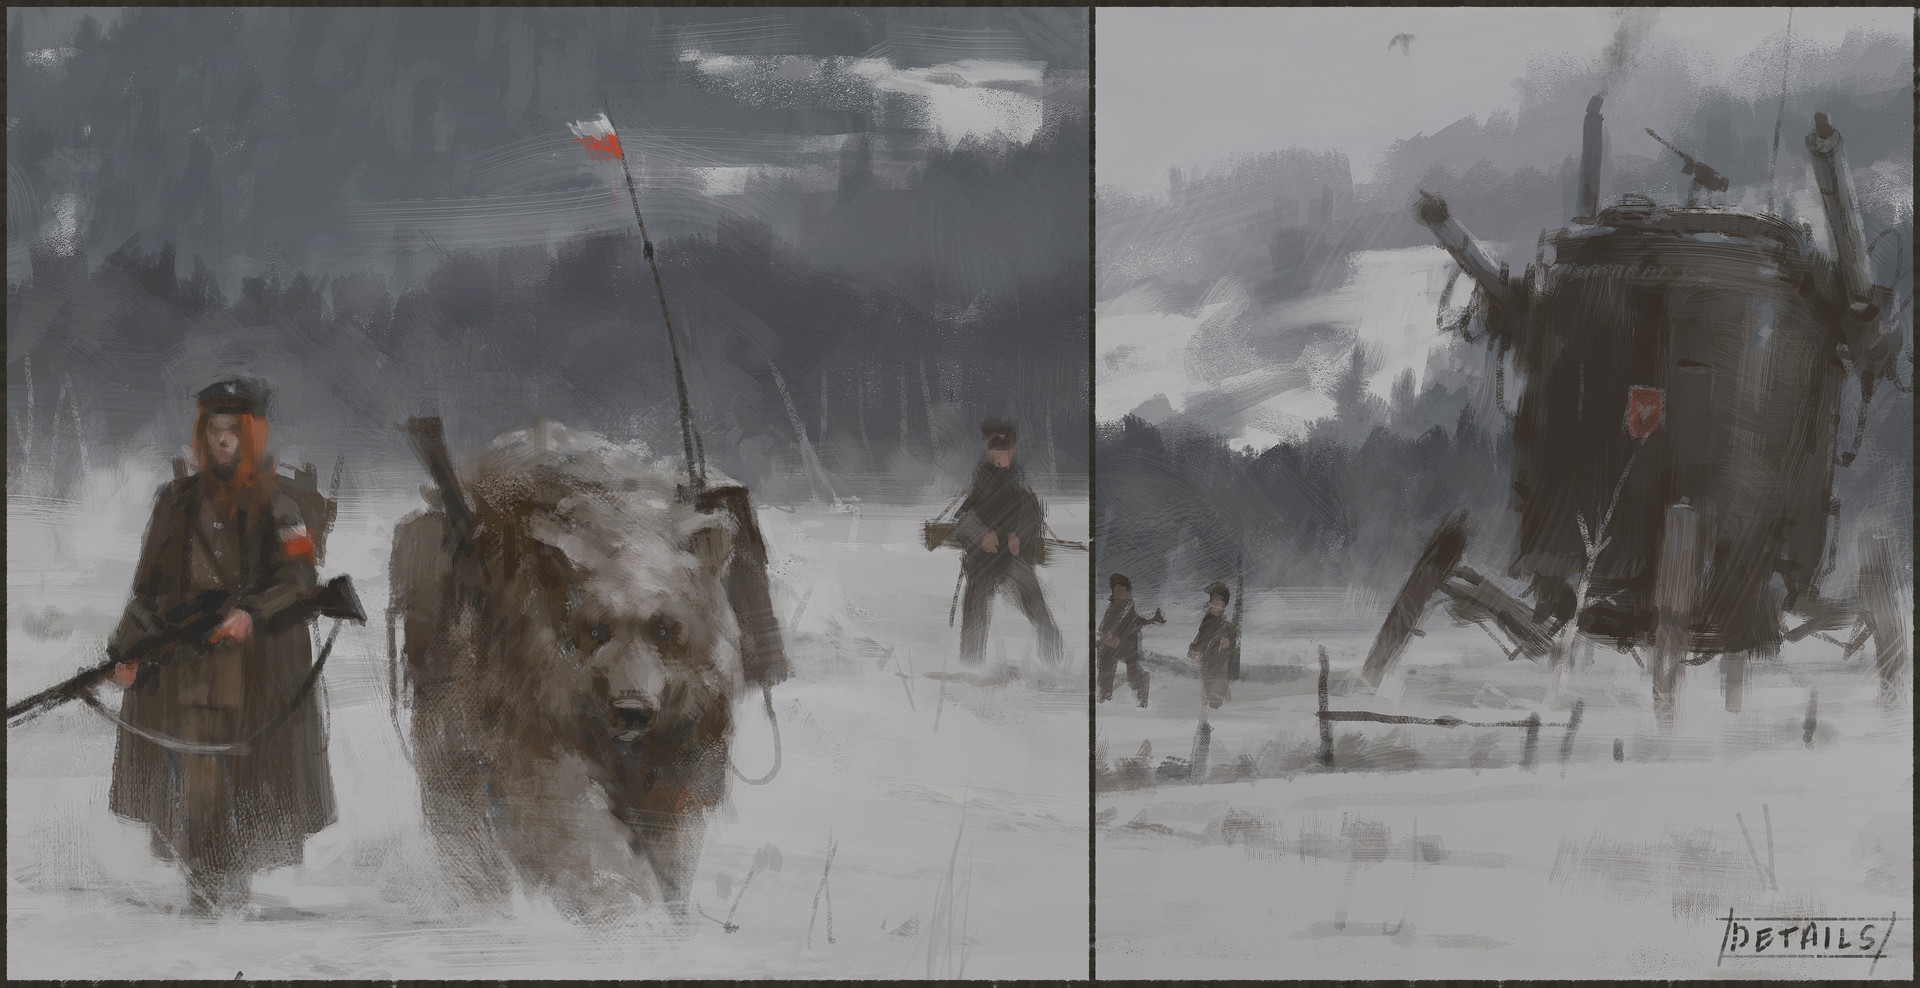 Jakub rozalski 1920 winter patrolsa